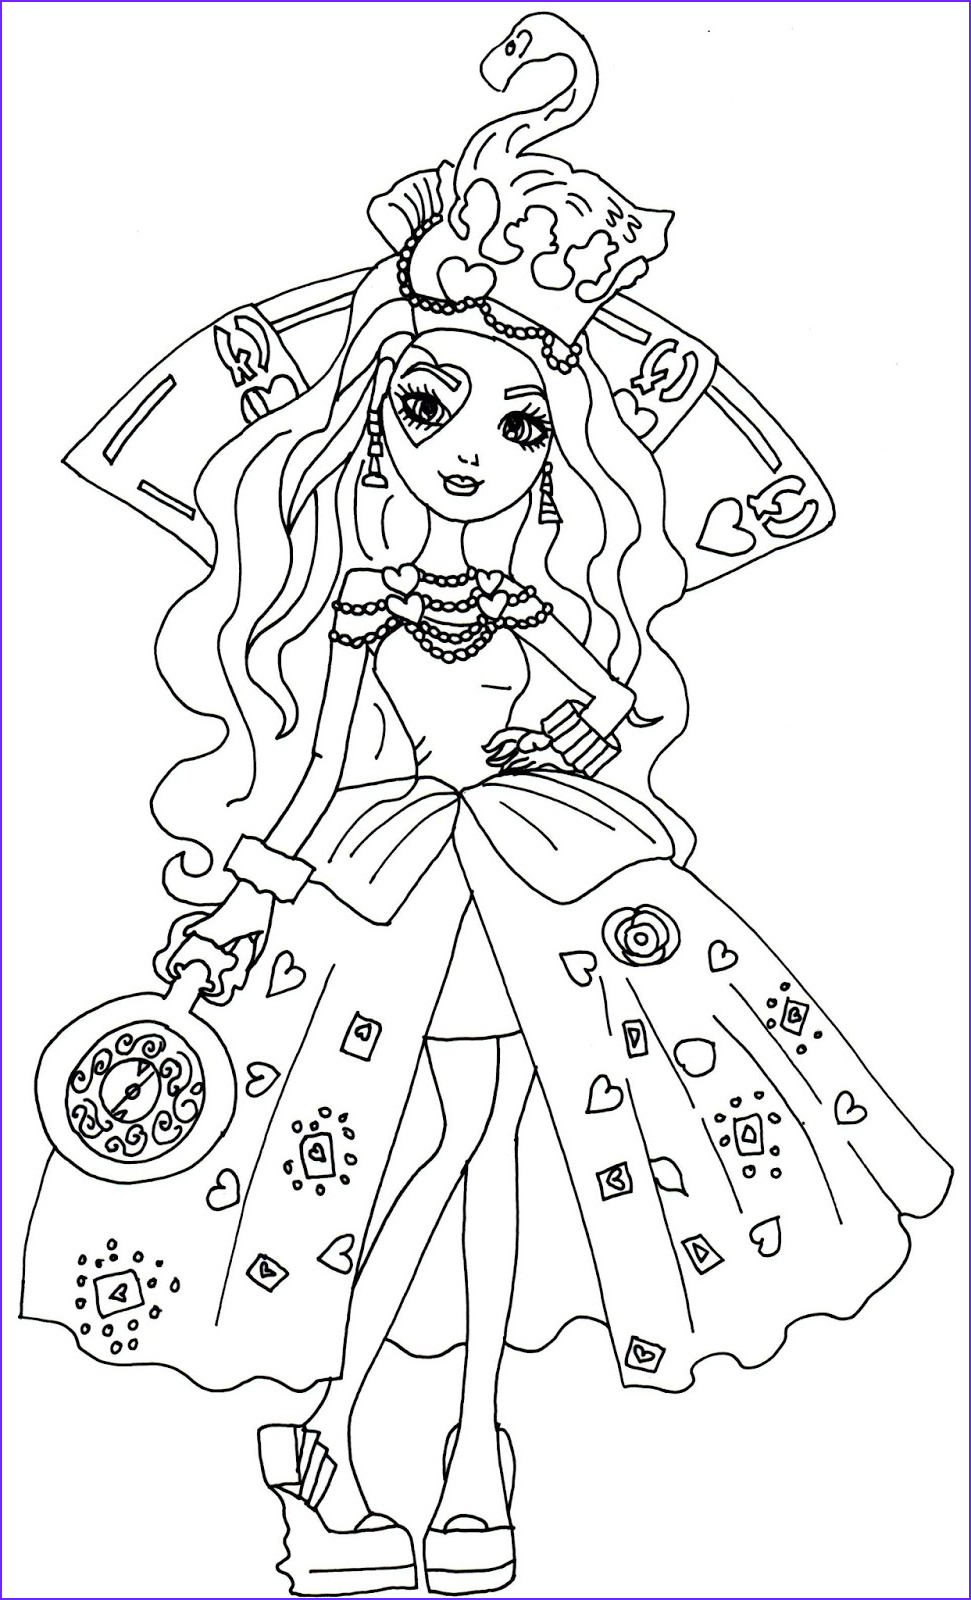 Ever After High Coloring Book Unique Image Free Printable Ever After High Coloring Pages Lizzie